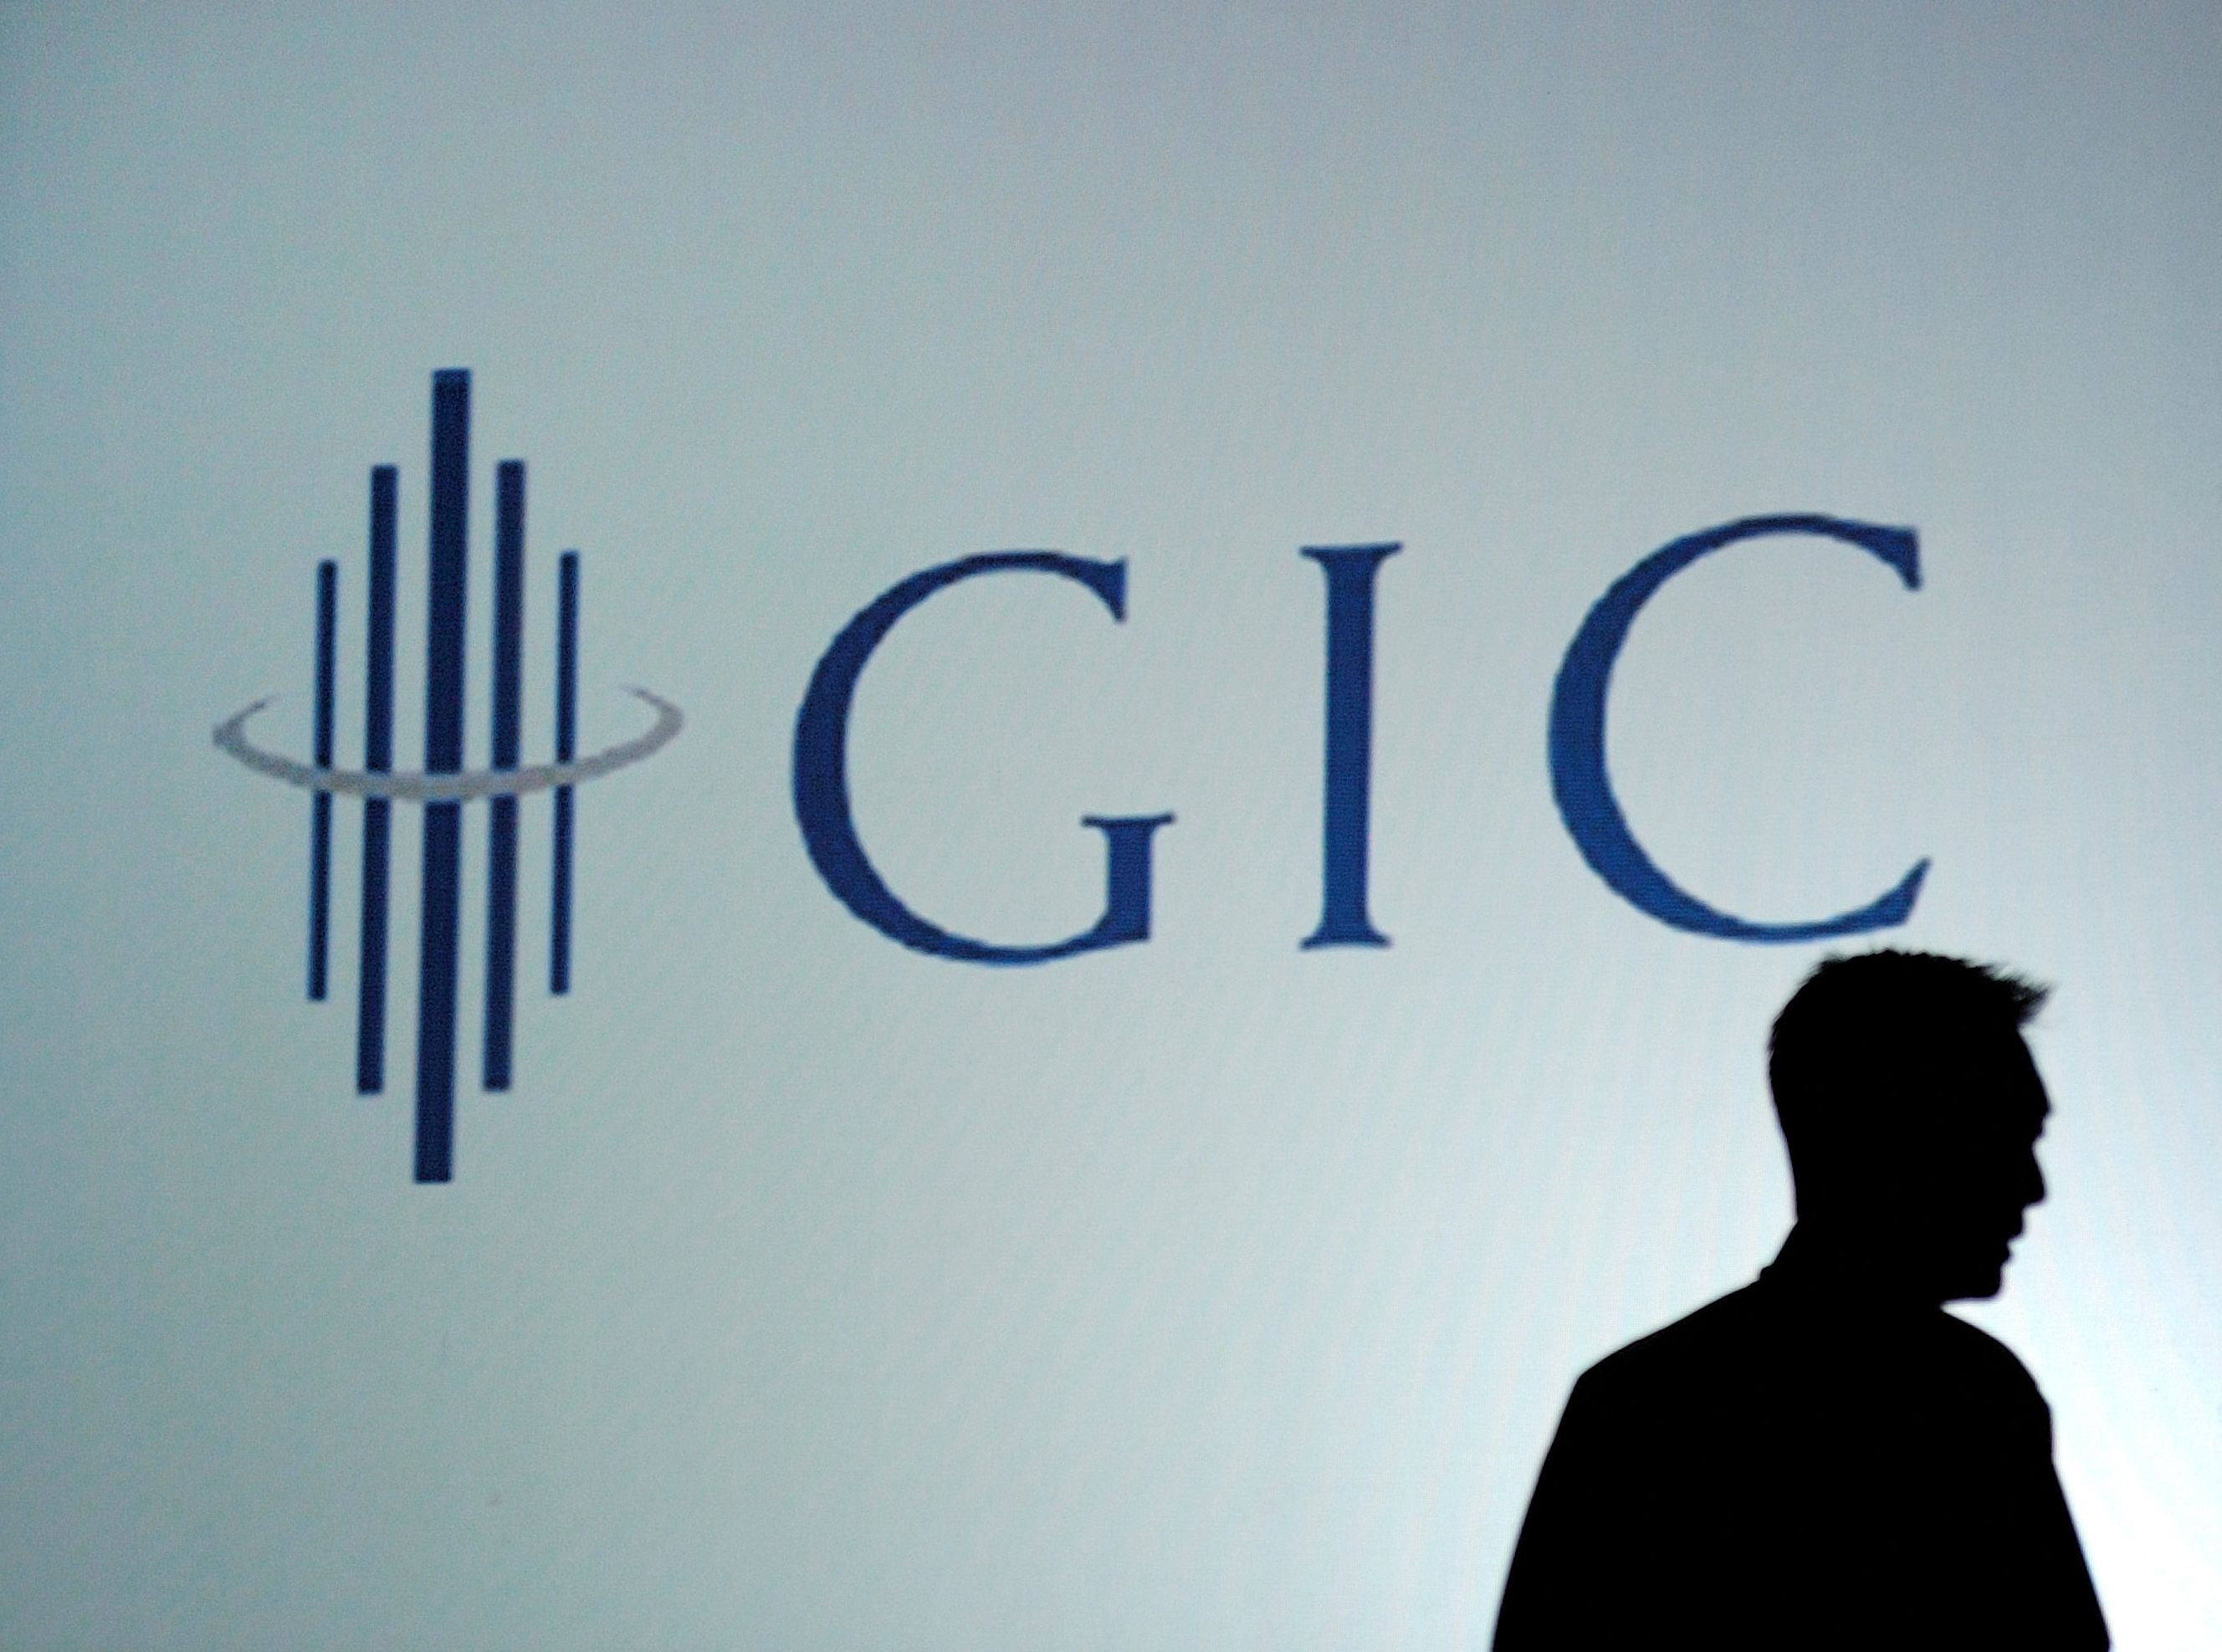 Singapore's GIC hires big data expert in quant strategy push